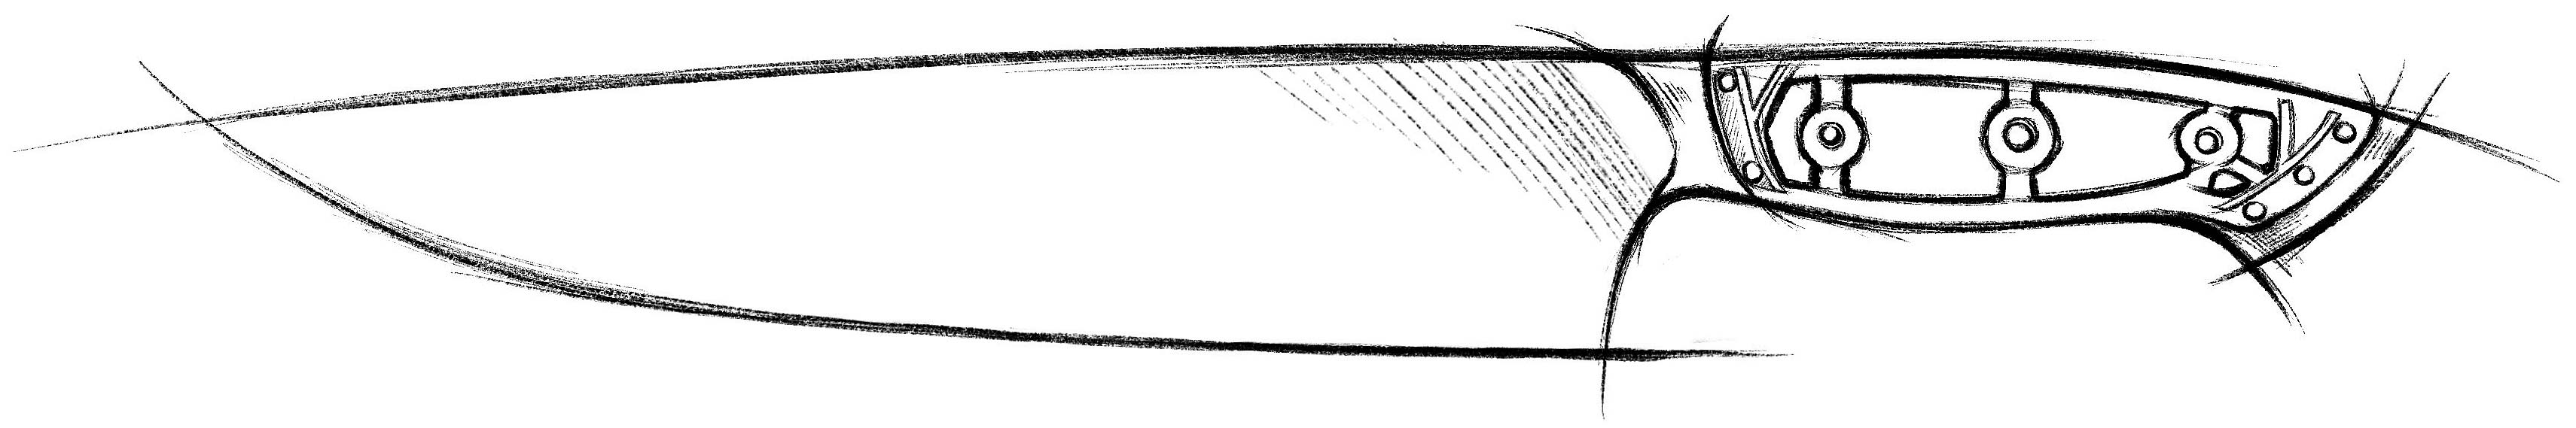 A sketch a kitchen knife in profile showing the internal structure of the handle.